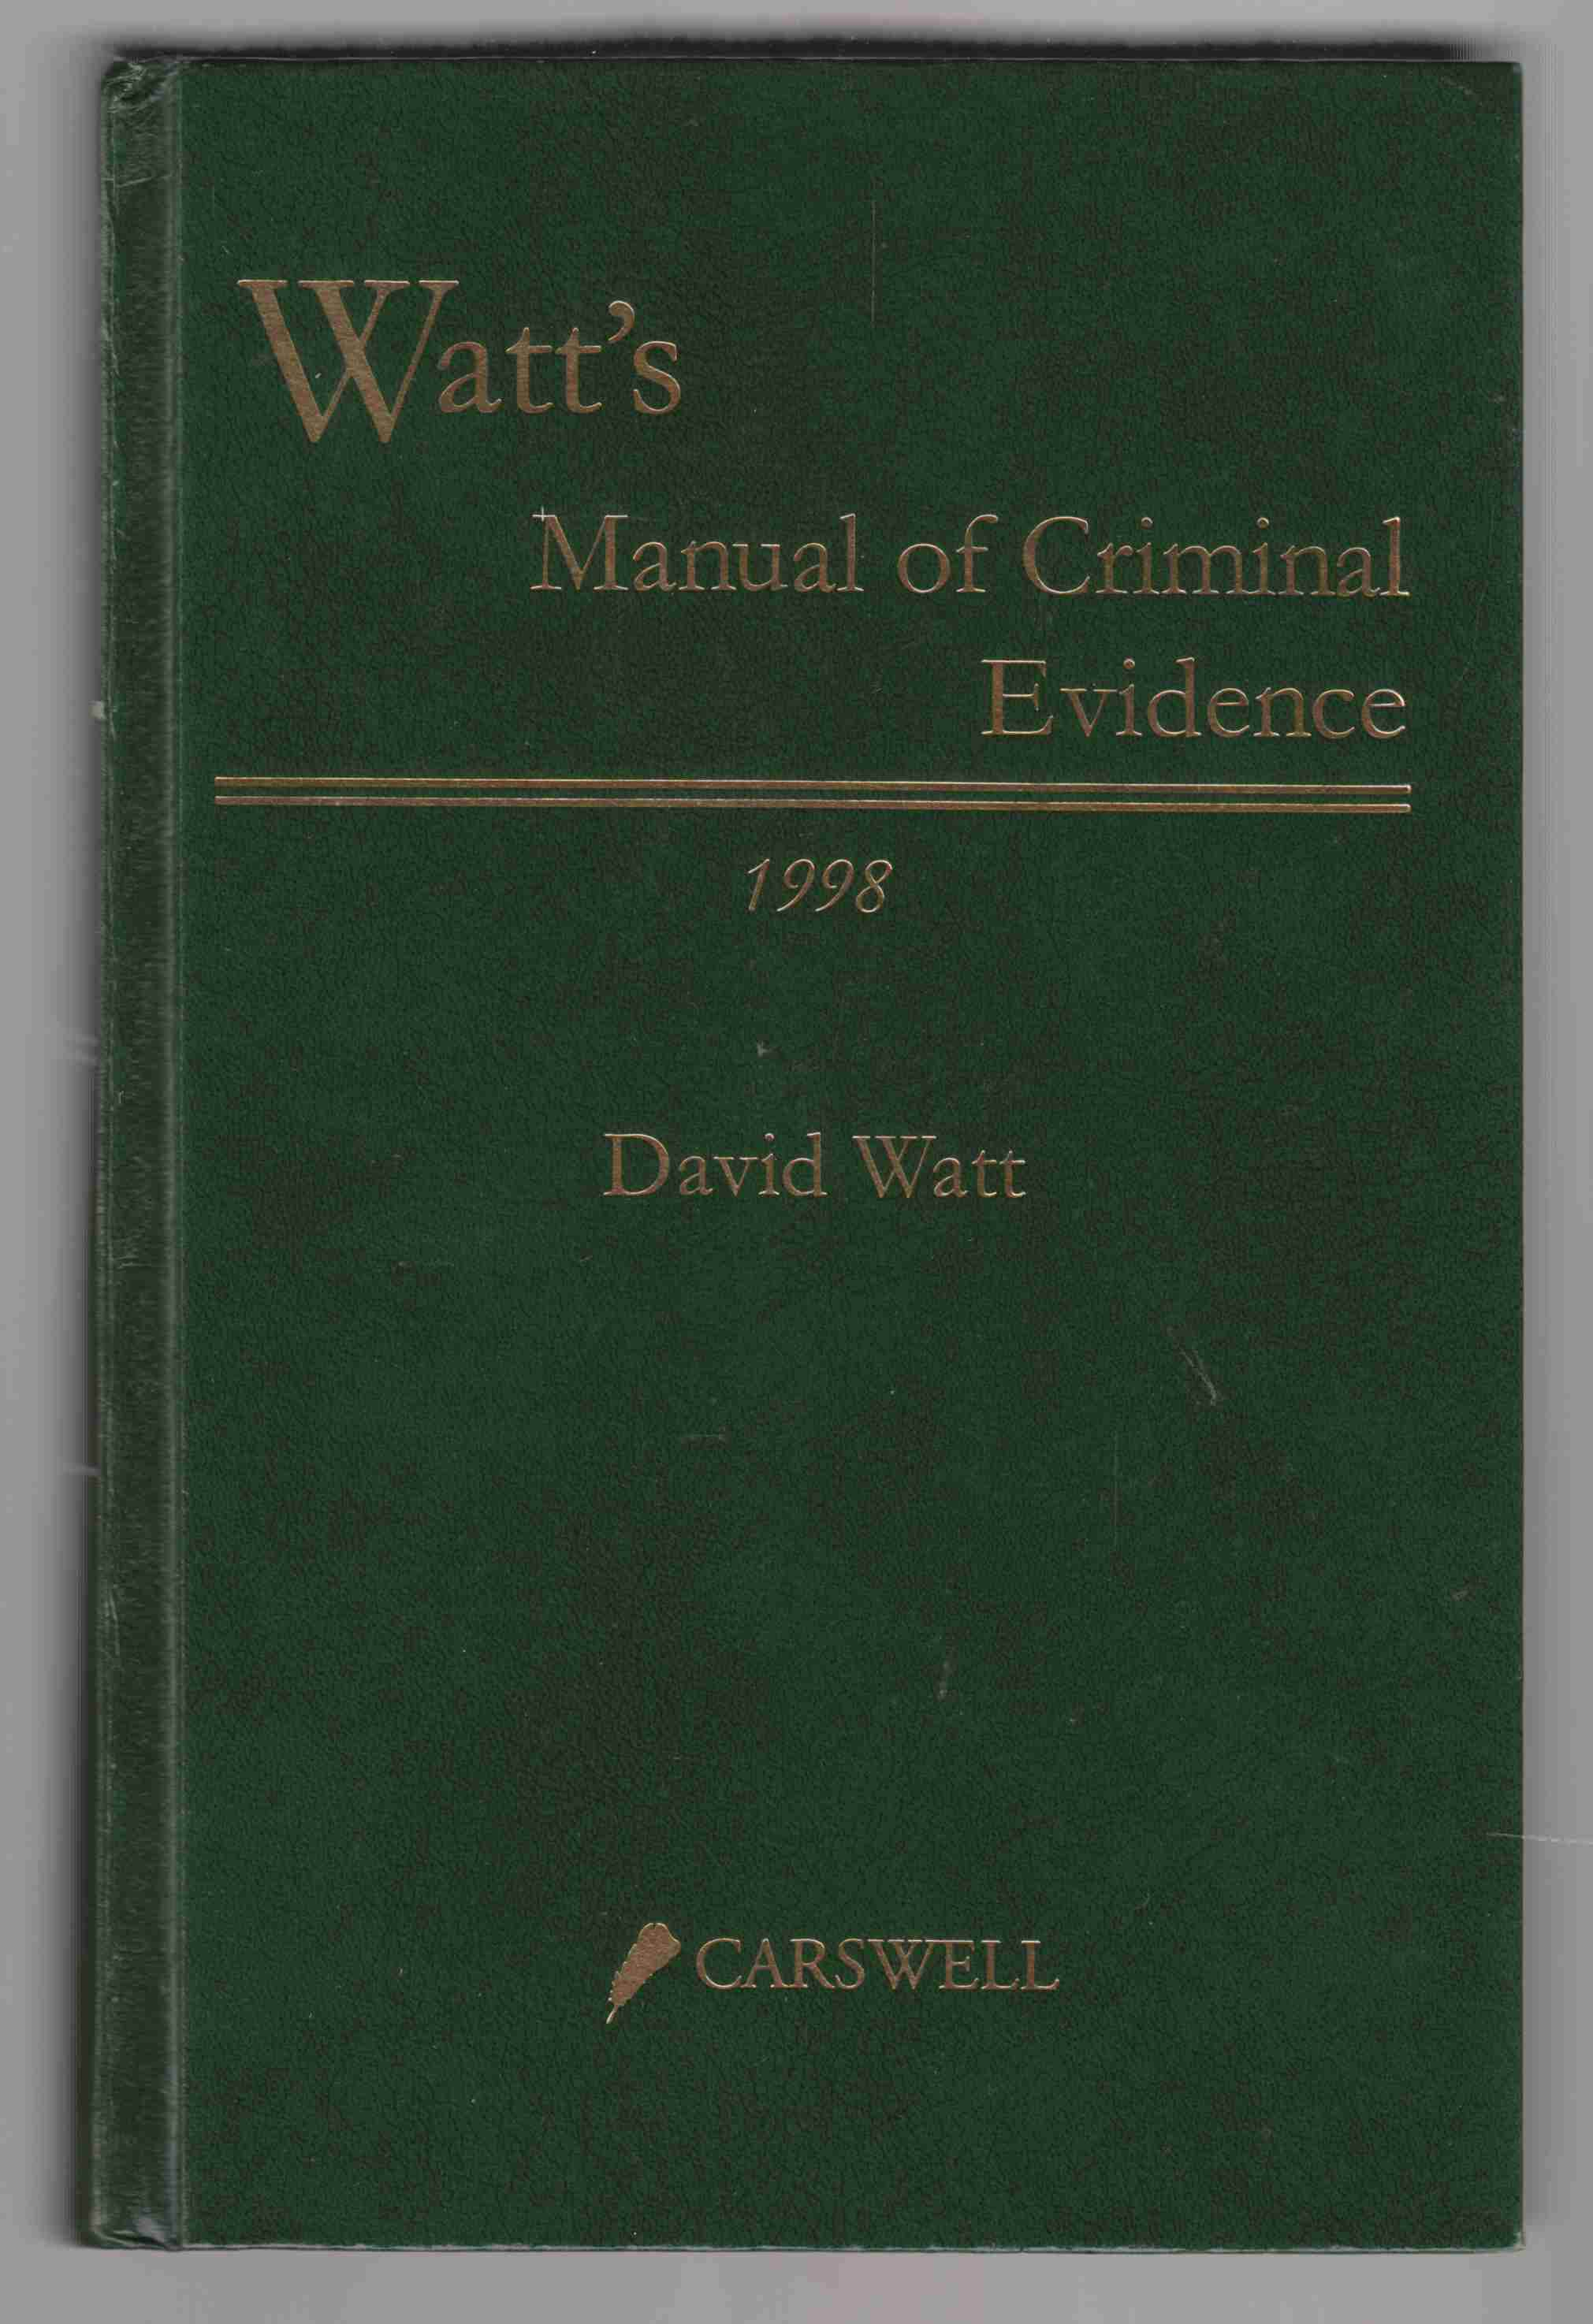 Image for Watt's Manual of Criminal Evidence 1998